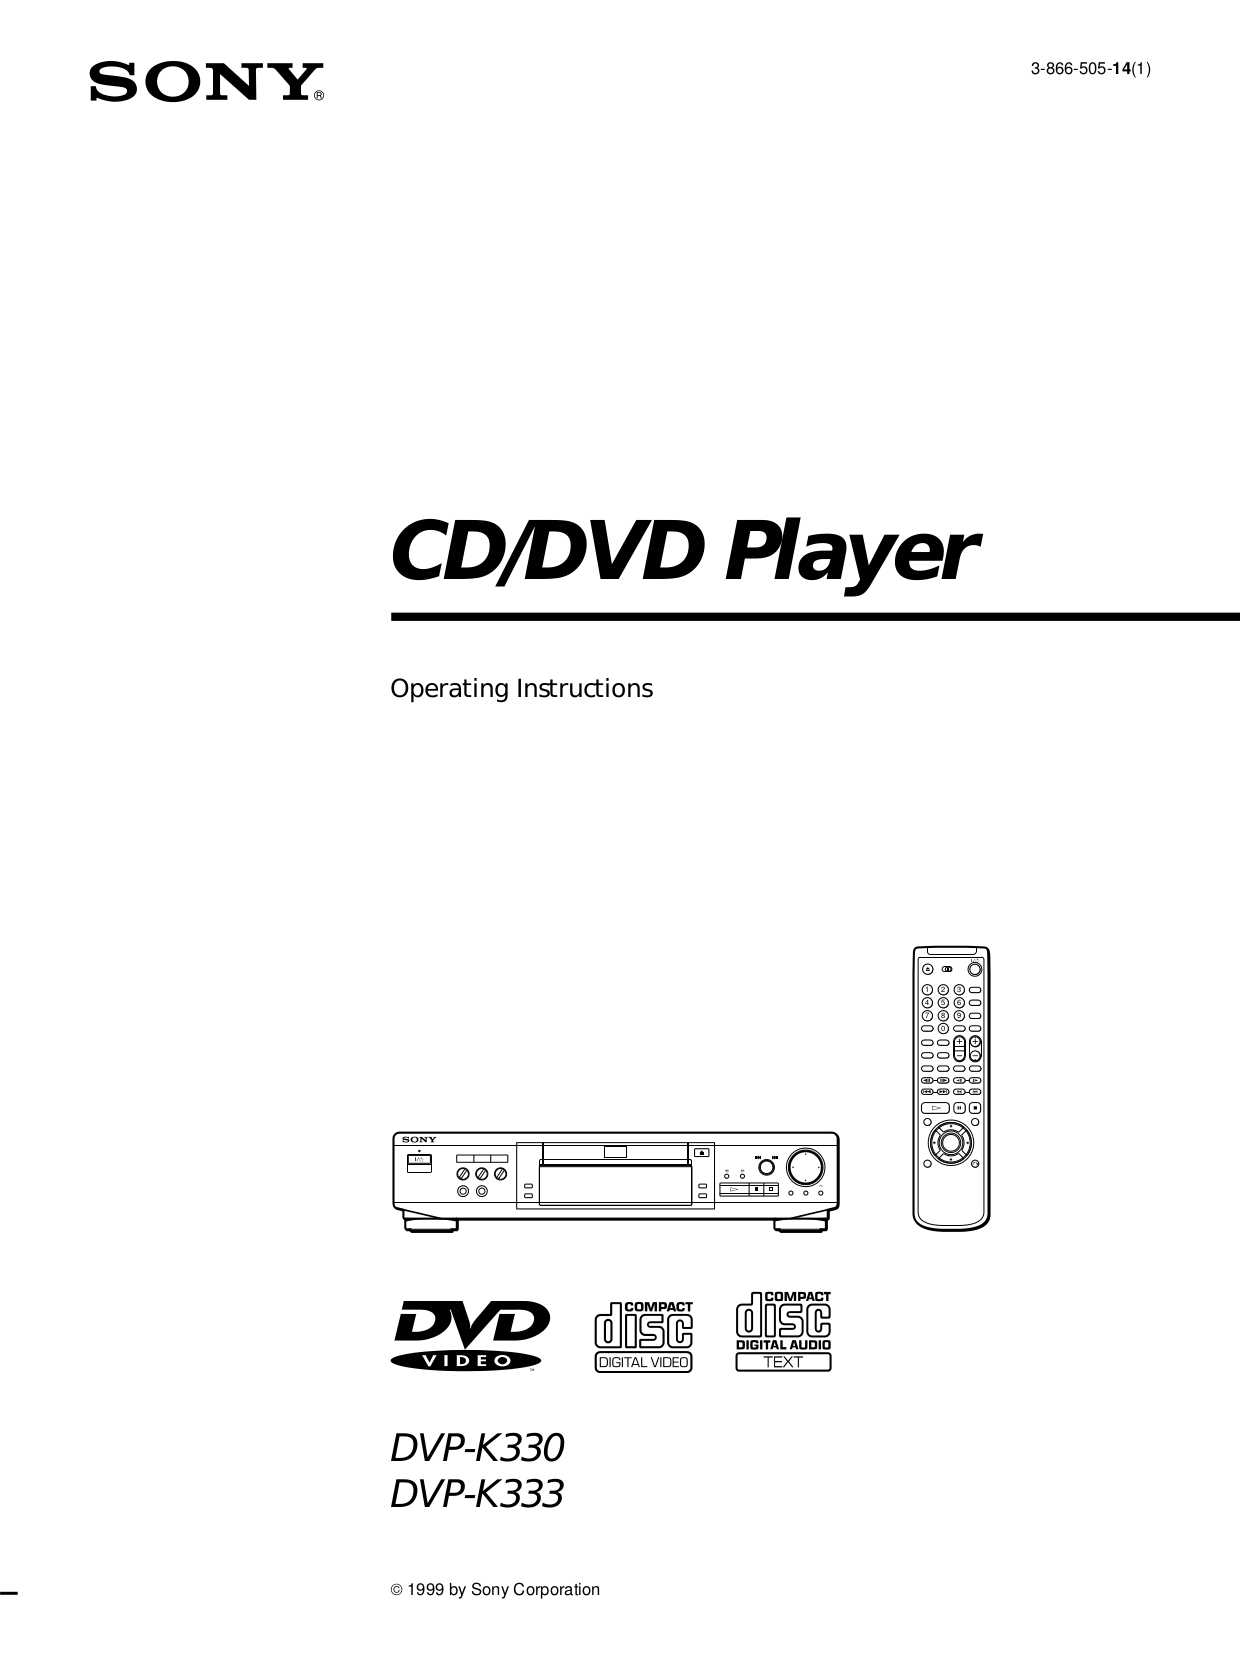 Download free pdf for Sony DVP-K333 DVD Players manual